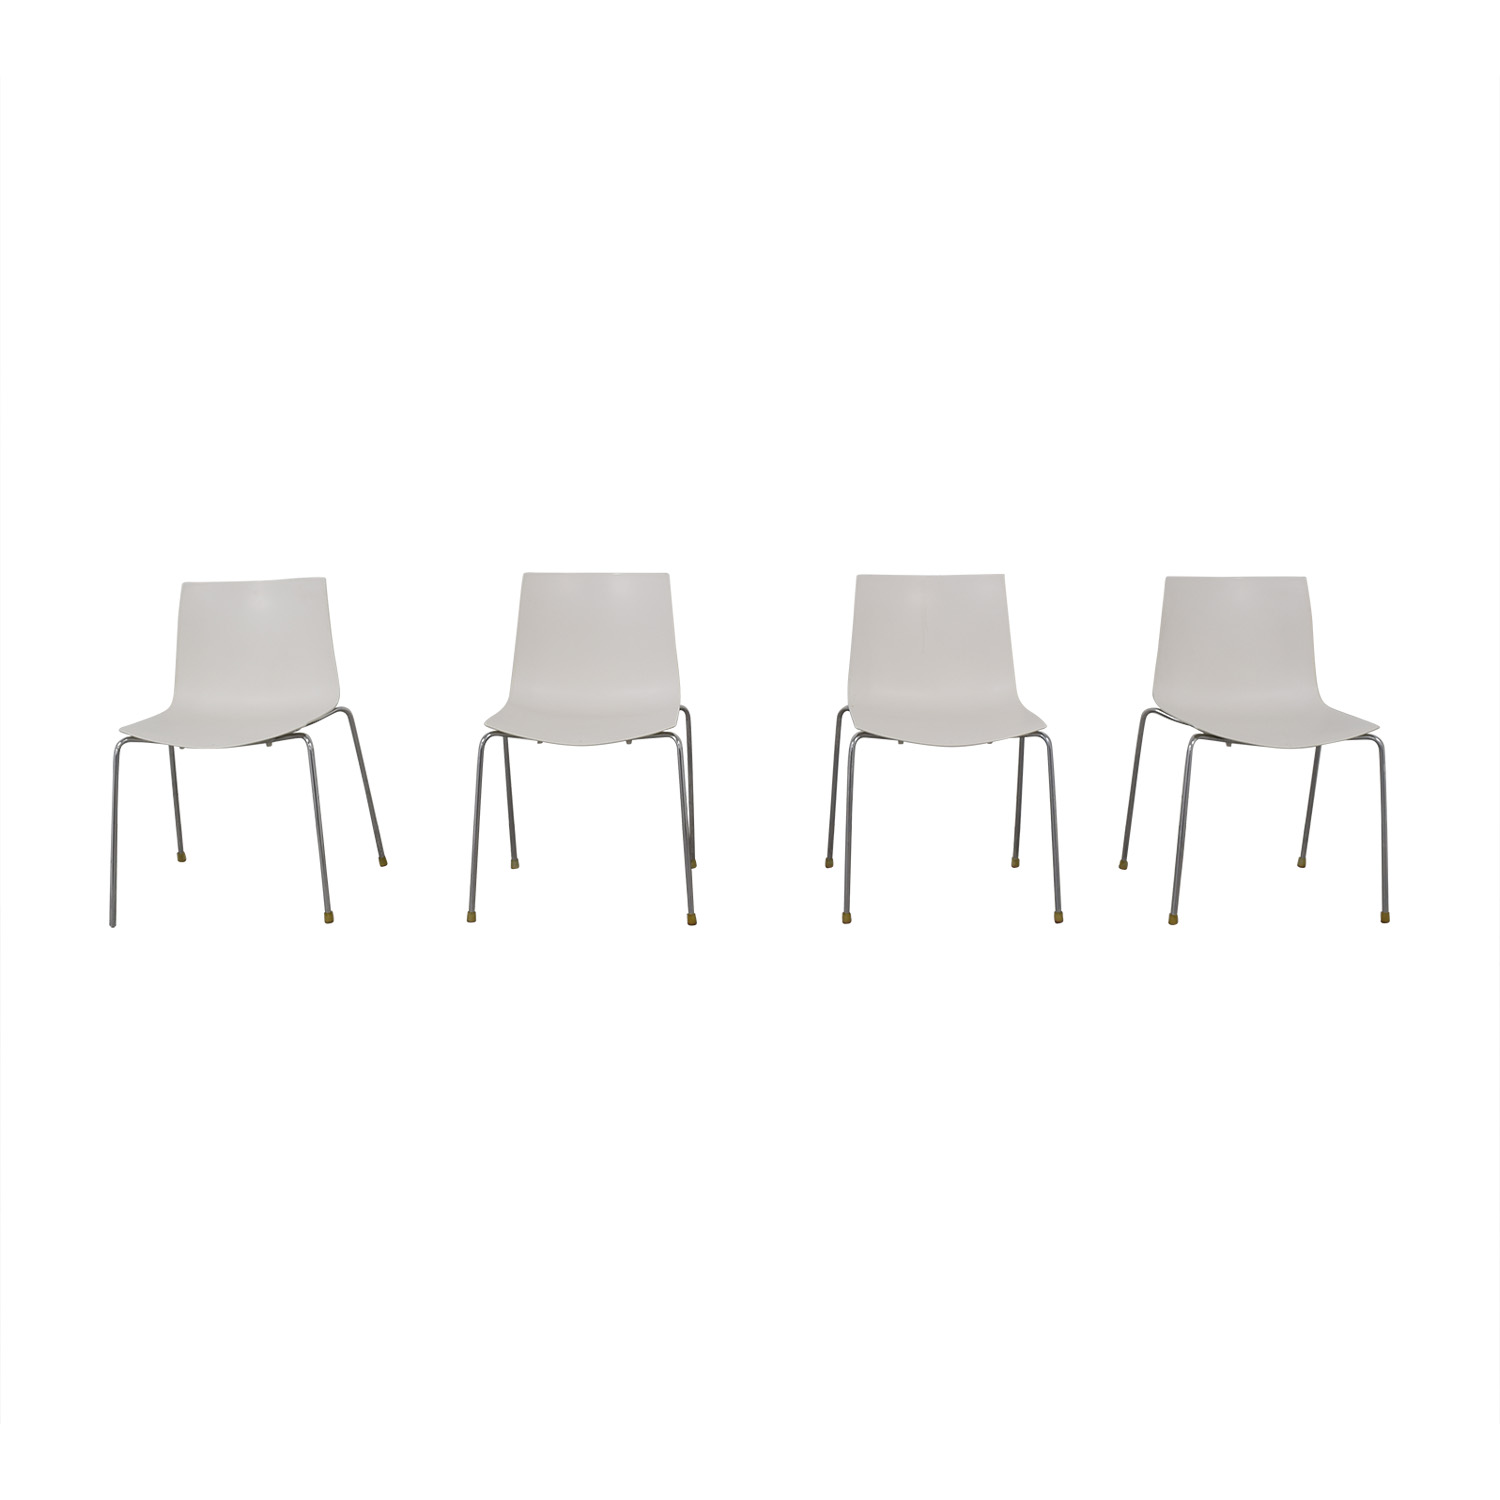 "Arper Arper ""Catifa 46"" Chairs Dining Chairs"